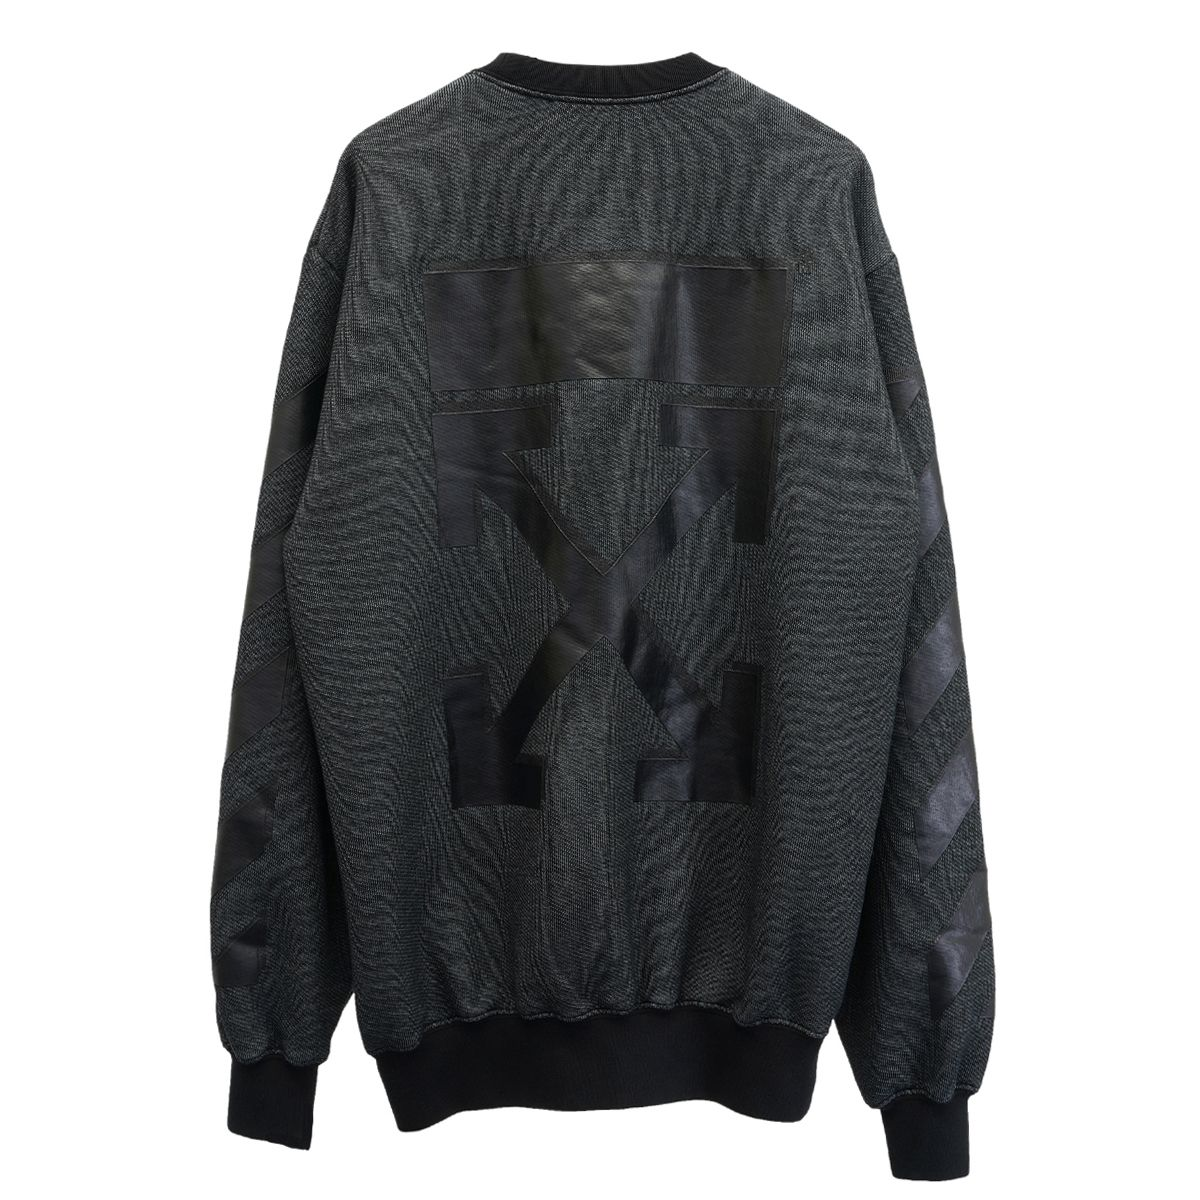 OFF-WHITE c/o Virgil Abloh WOMENS ARROW REG CREWNECK / 1010 : BLACK BLACK